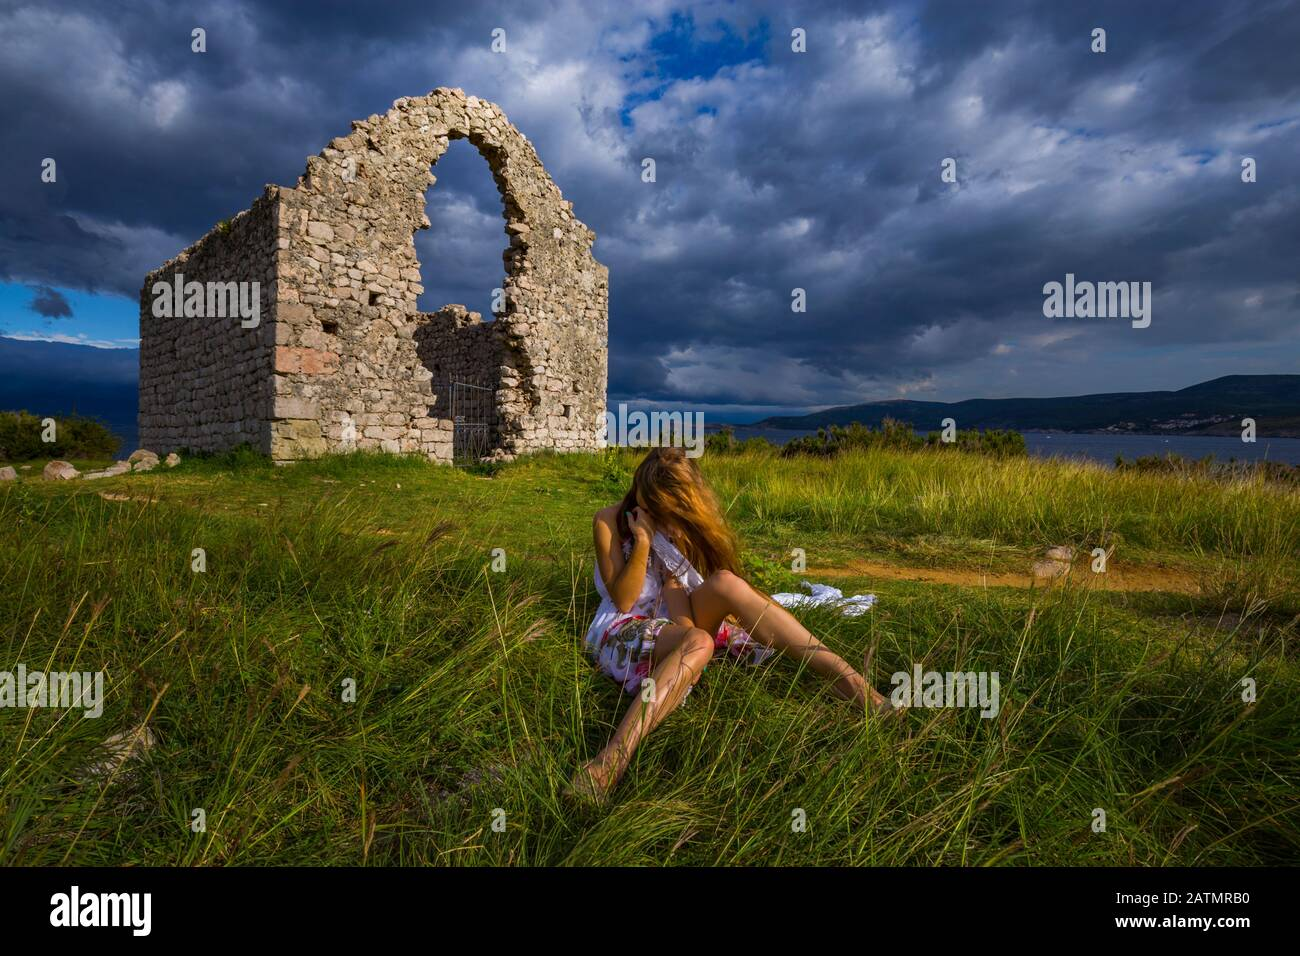 Country-girl sitting in grass in field countyside countrygirl looking down hiding head face identity unknown flying golden hair because of wind windy Stock Photo